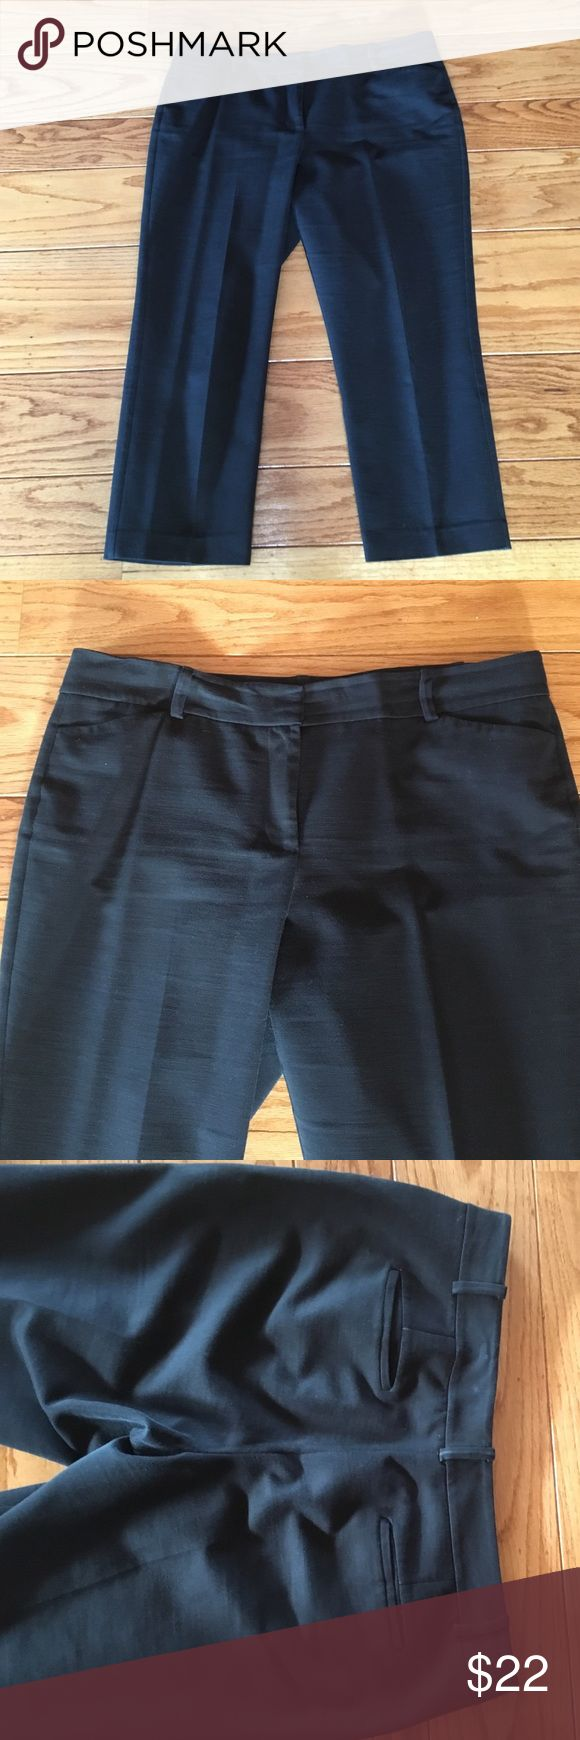 """Classic Ann Taylor Curvy Fit Black Cropped Pants Awesome classic cropped pants, hitting above the ankle (24.5"""" inseam). Flattering fit for us Curvy women. Front zipper with hooks and interior button closure. Belt loops, two front pockets, two flat back pockets. In very good condition, with some slight wearing on center back belt loop (from rubbing against office chair). Machine wash cold (but I have dry cleaned so no fading). Fabric has some texture and feels like a thicker, high quality…"""